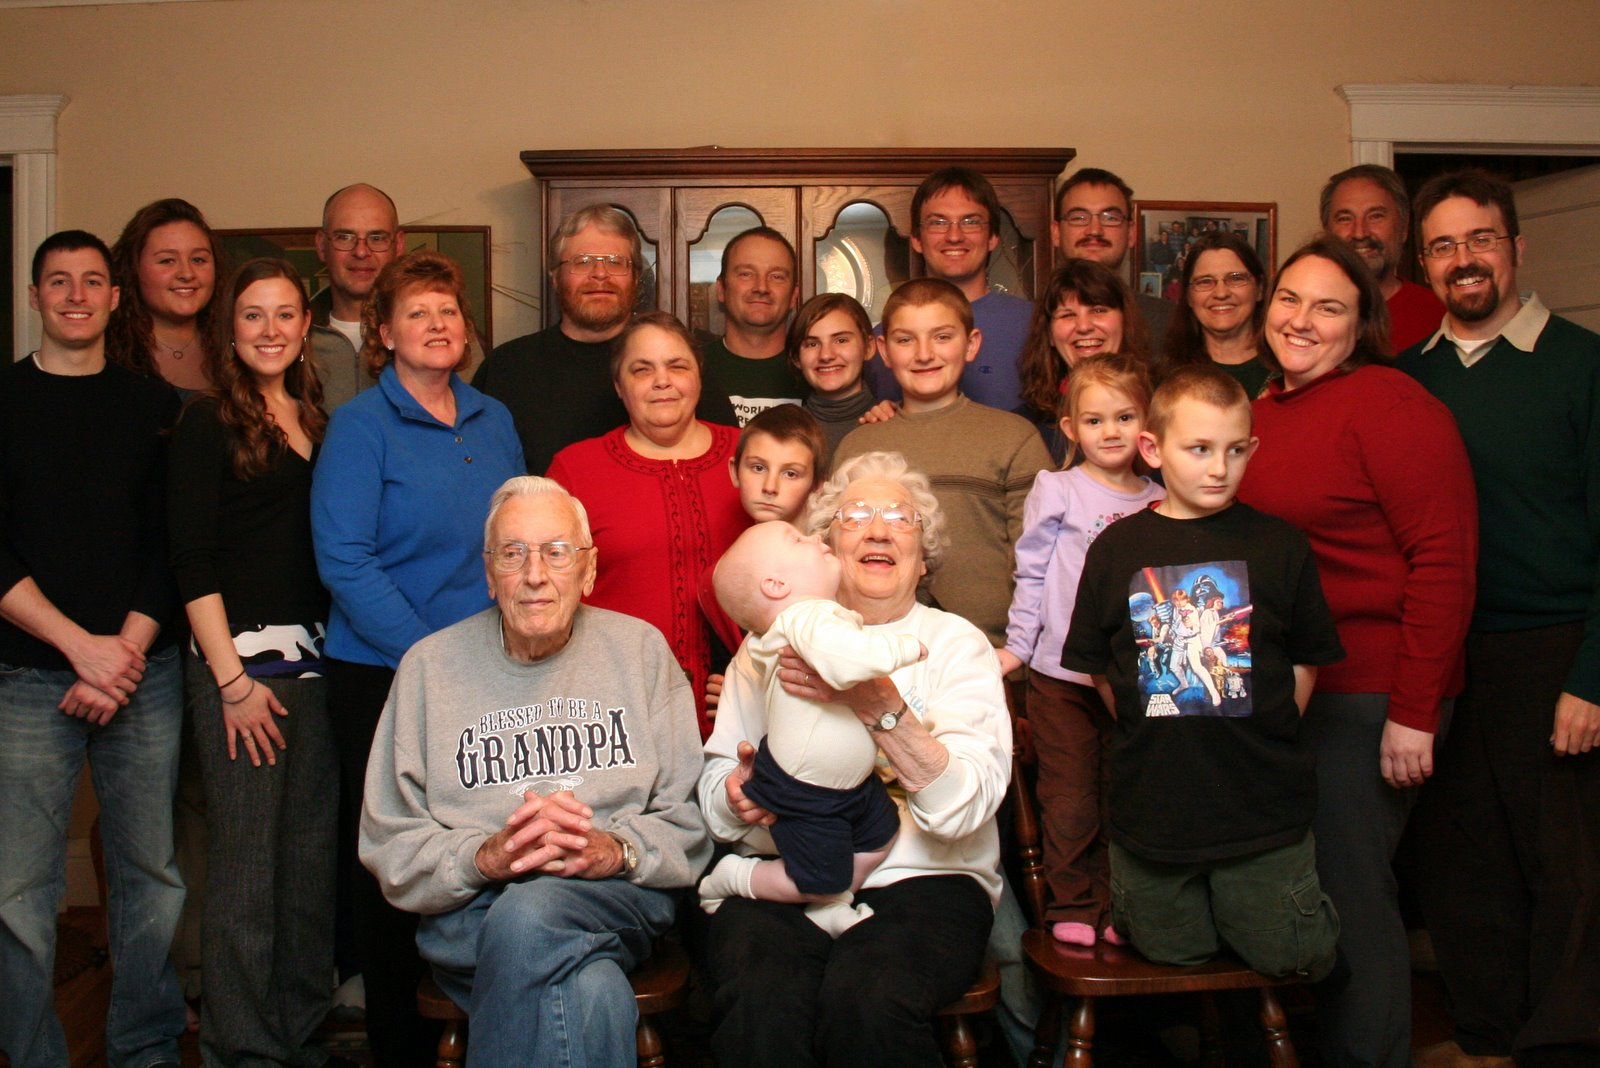 The greater Dibble Family - 23 in total